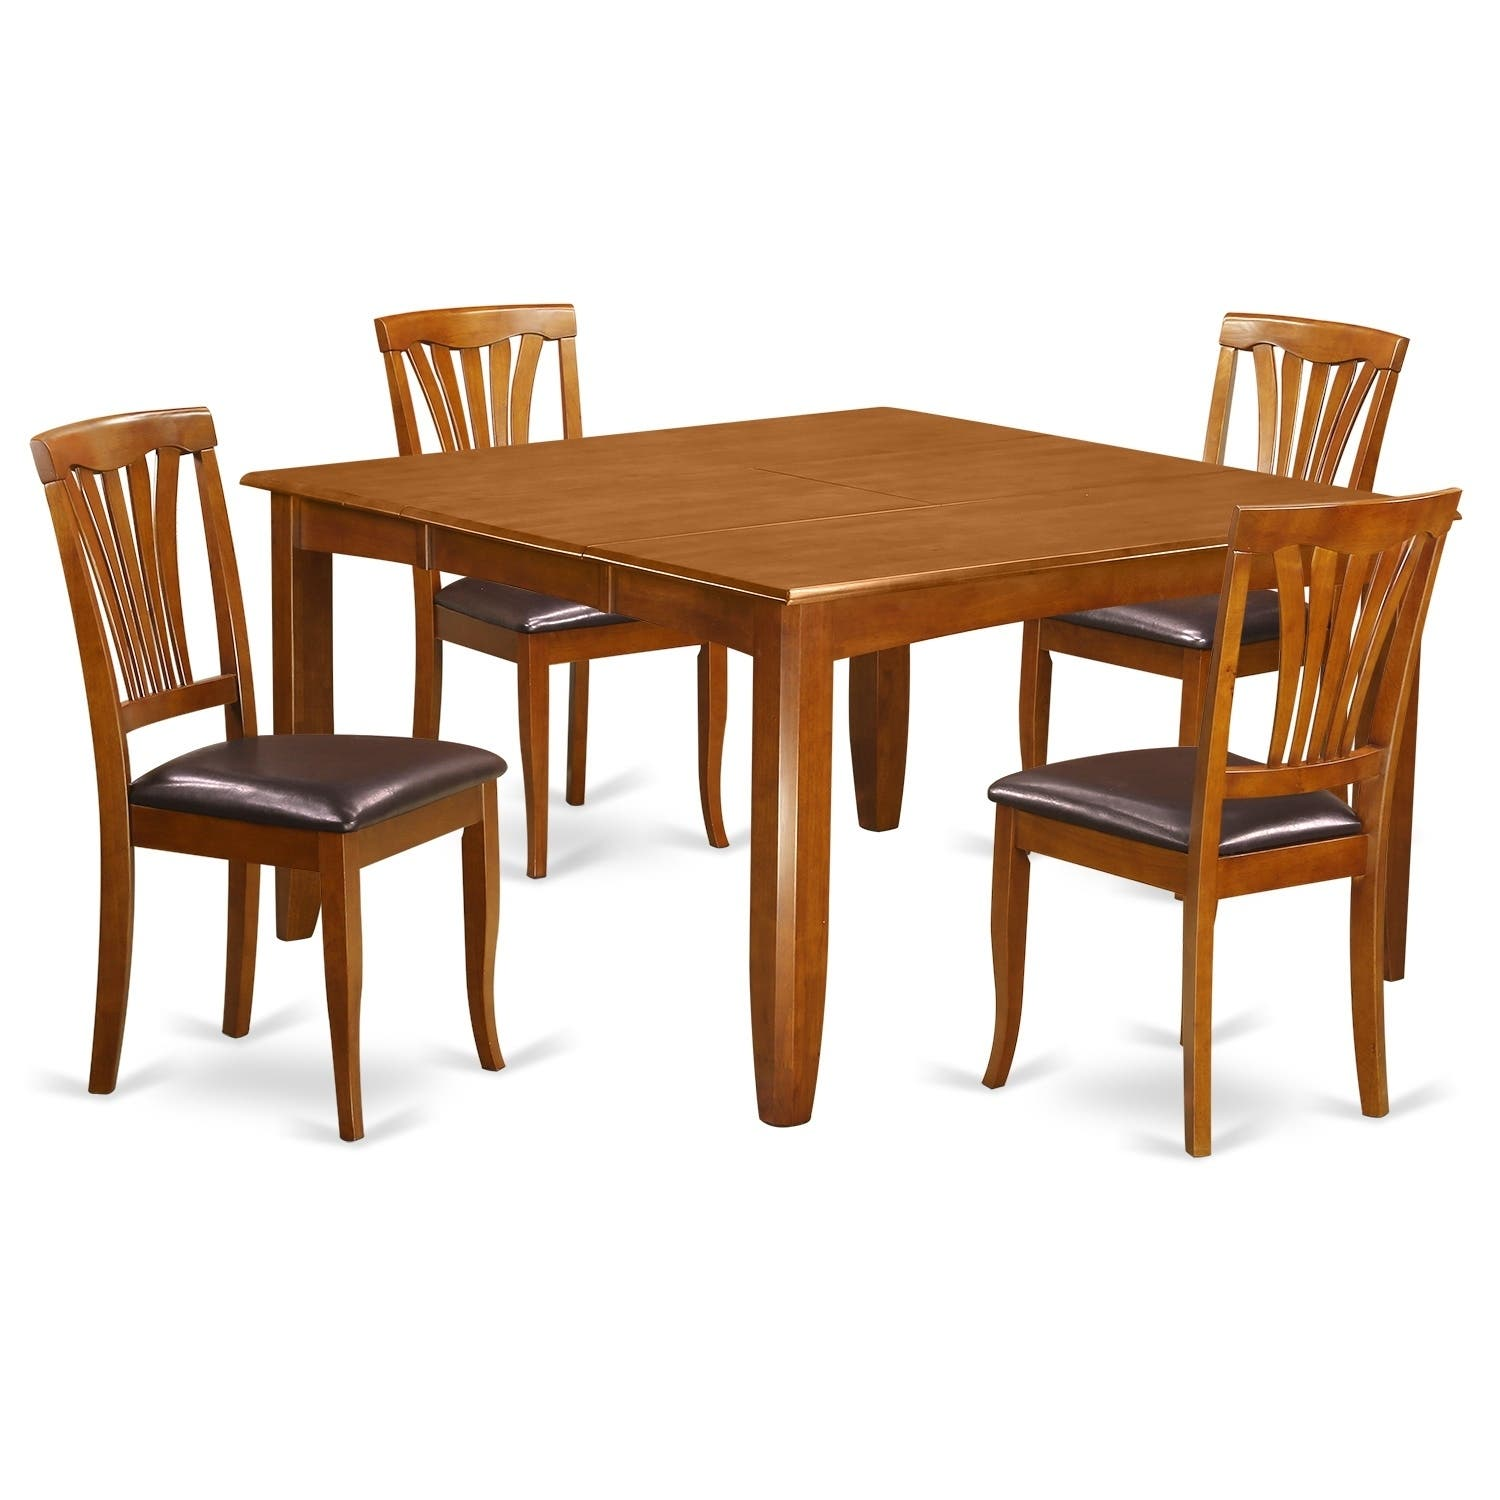 Dining room sets for less for Dining room furniture 0 finance